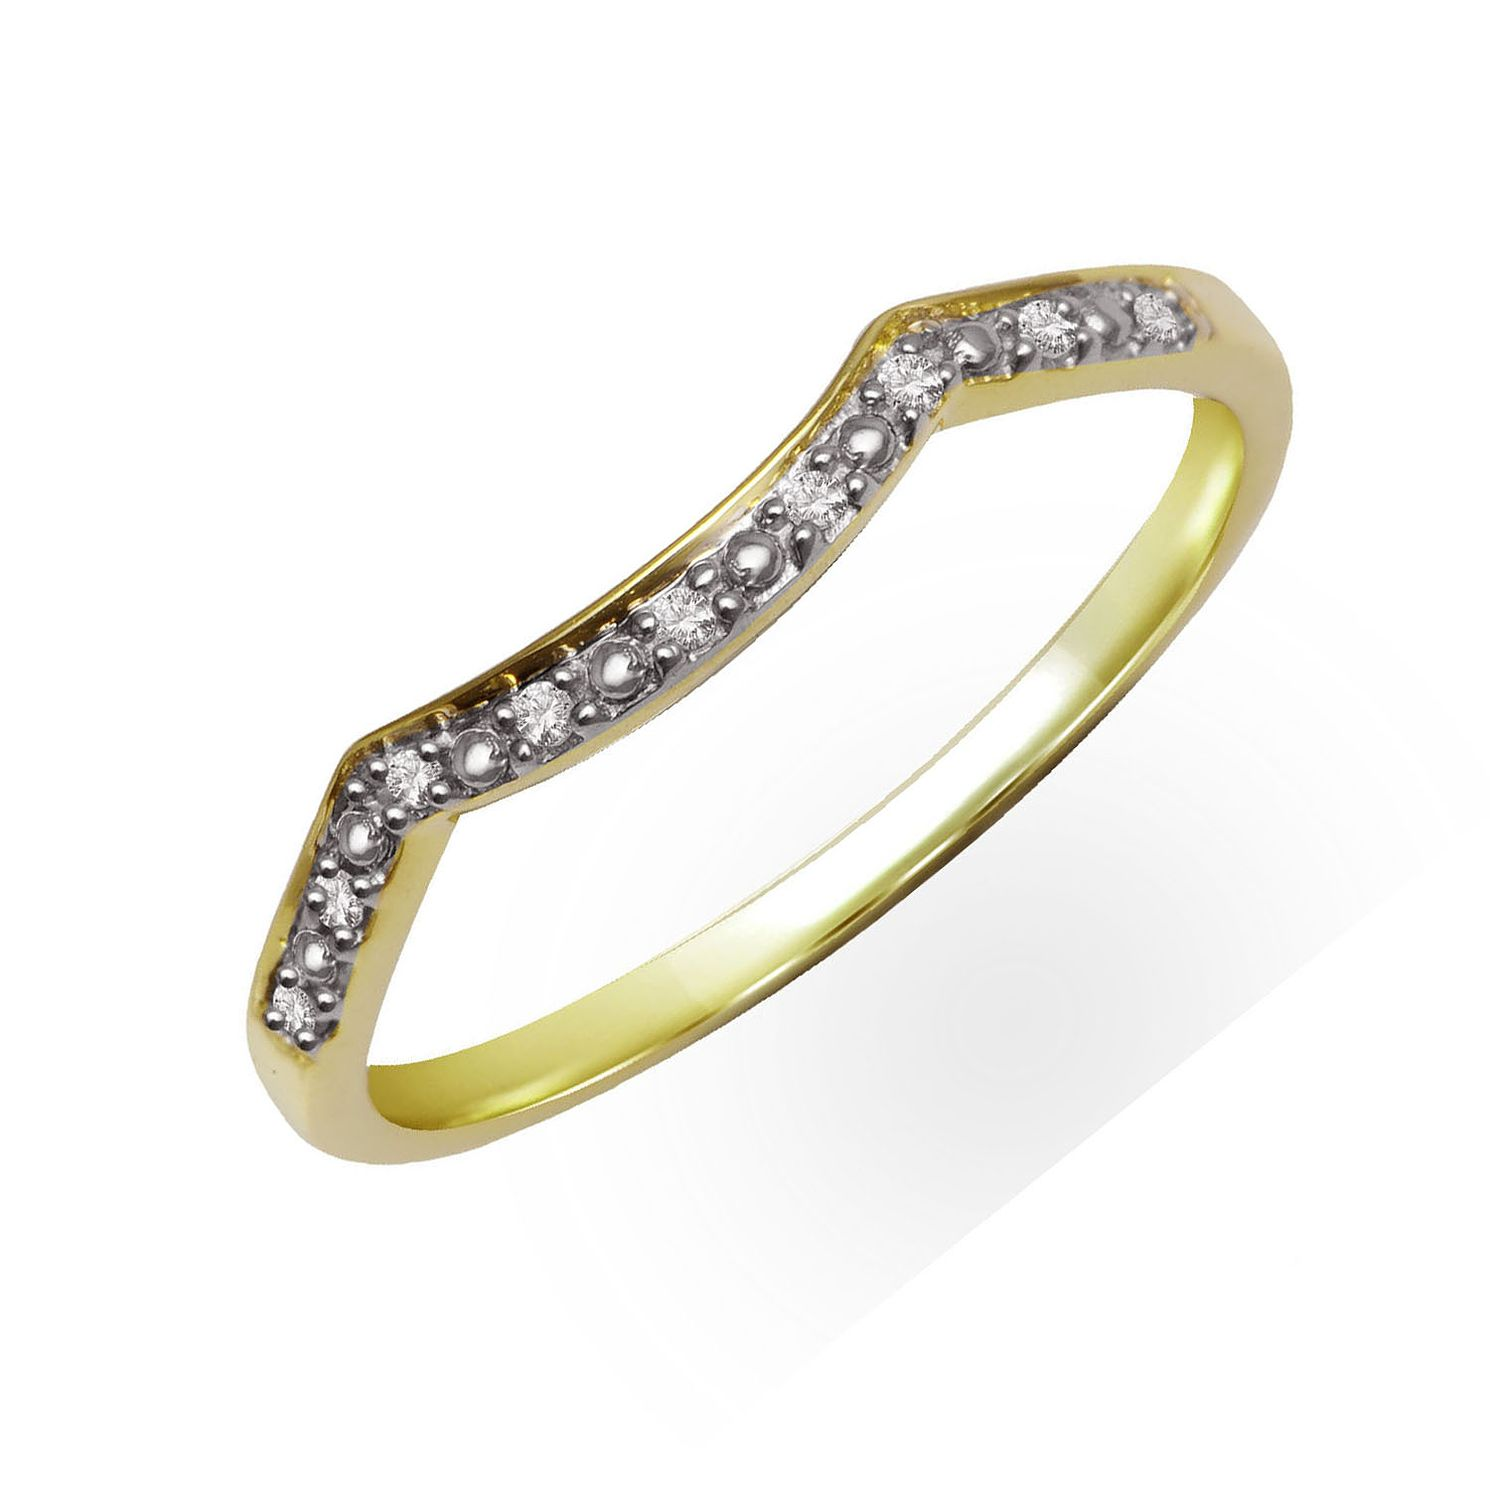 Perfect Fit 9ct Yellow Gold & Diamond Smile Eternity Ring - Product number 2310880